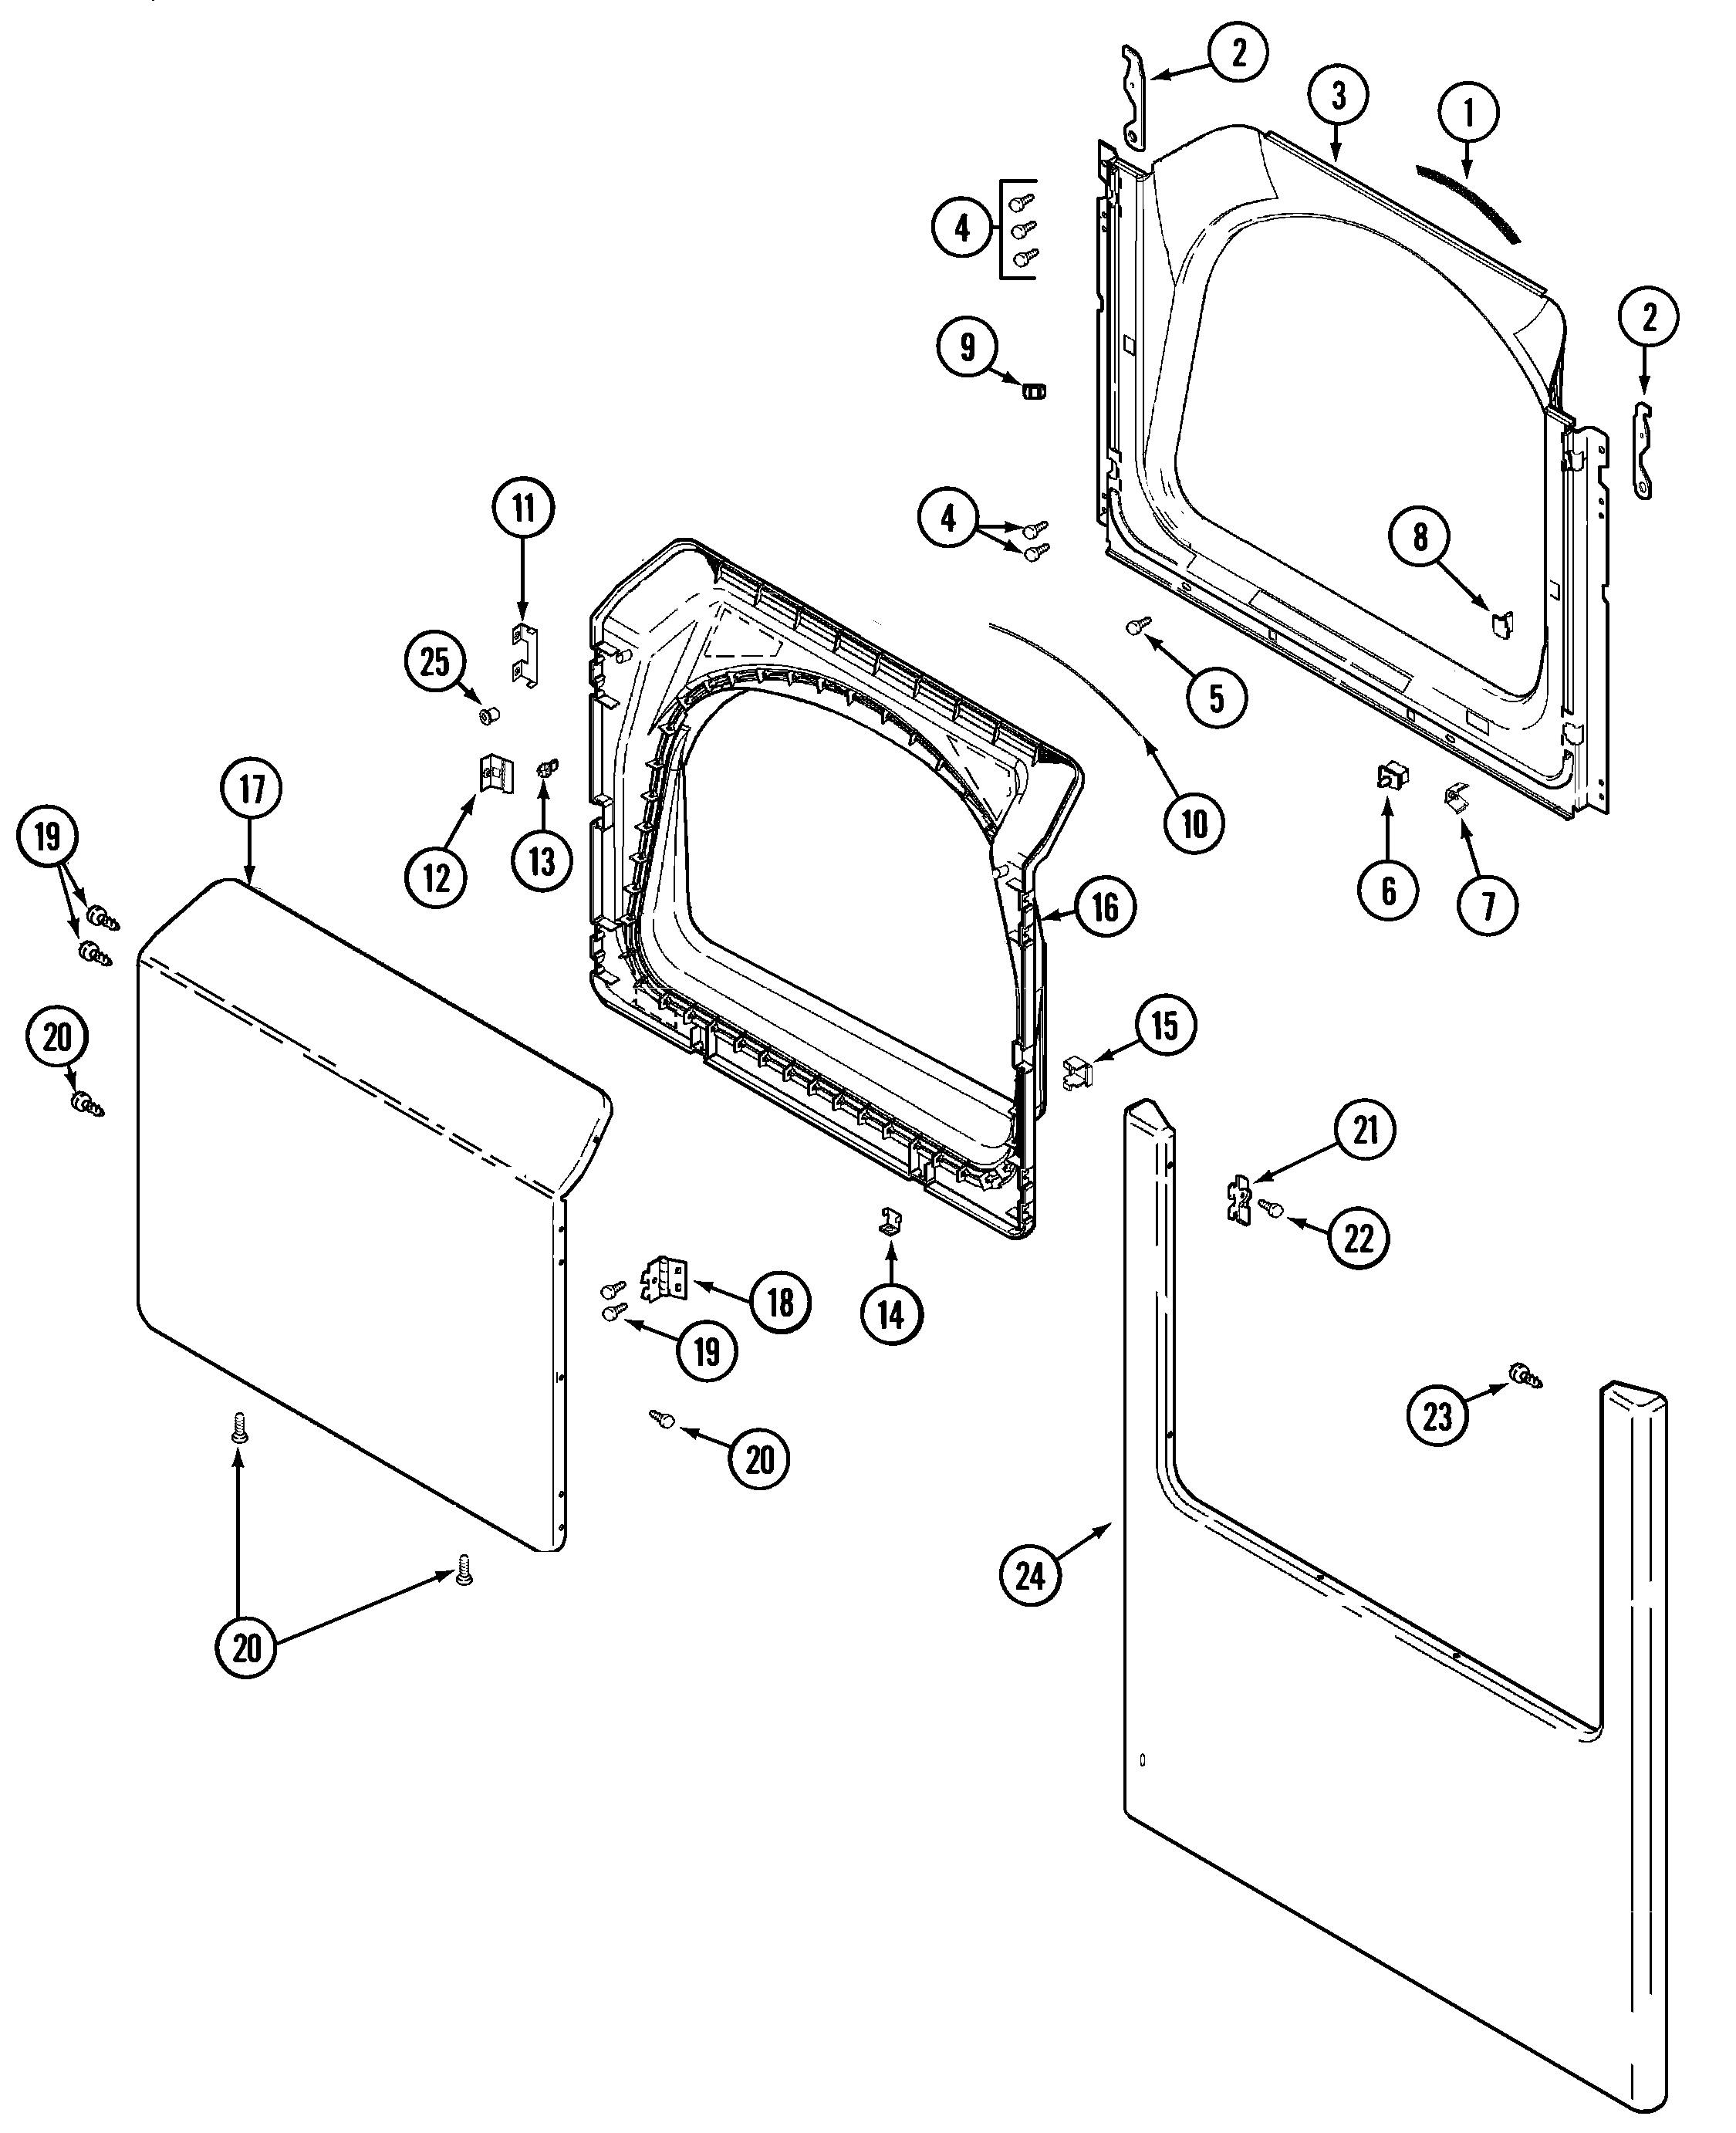 small resolution of looking for maytag model mdg5500awq dryer repair replacement parts cabinet diagram and parts list for maytag dryerparts model